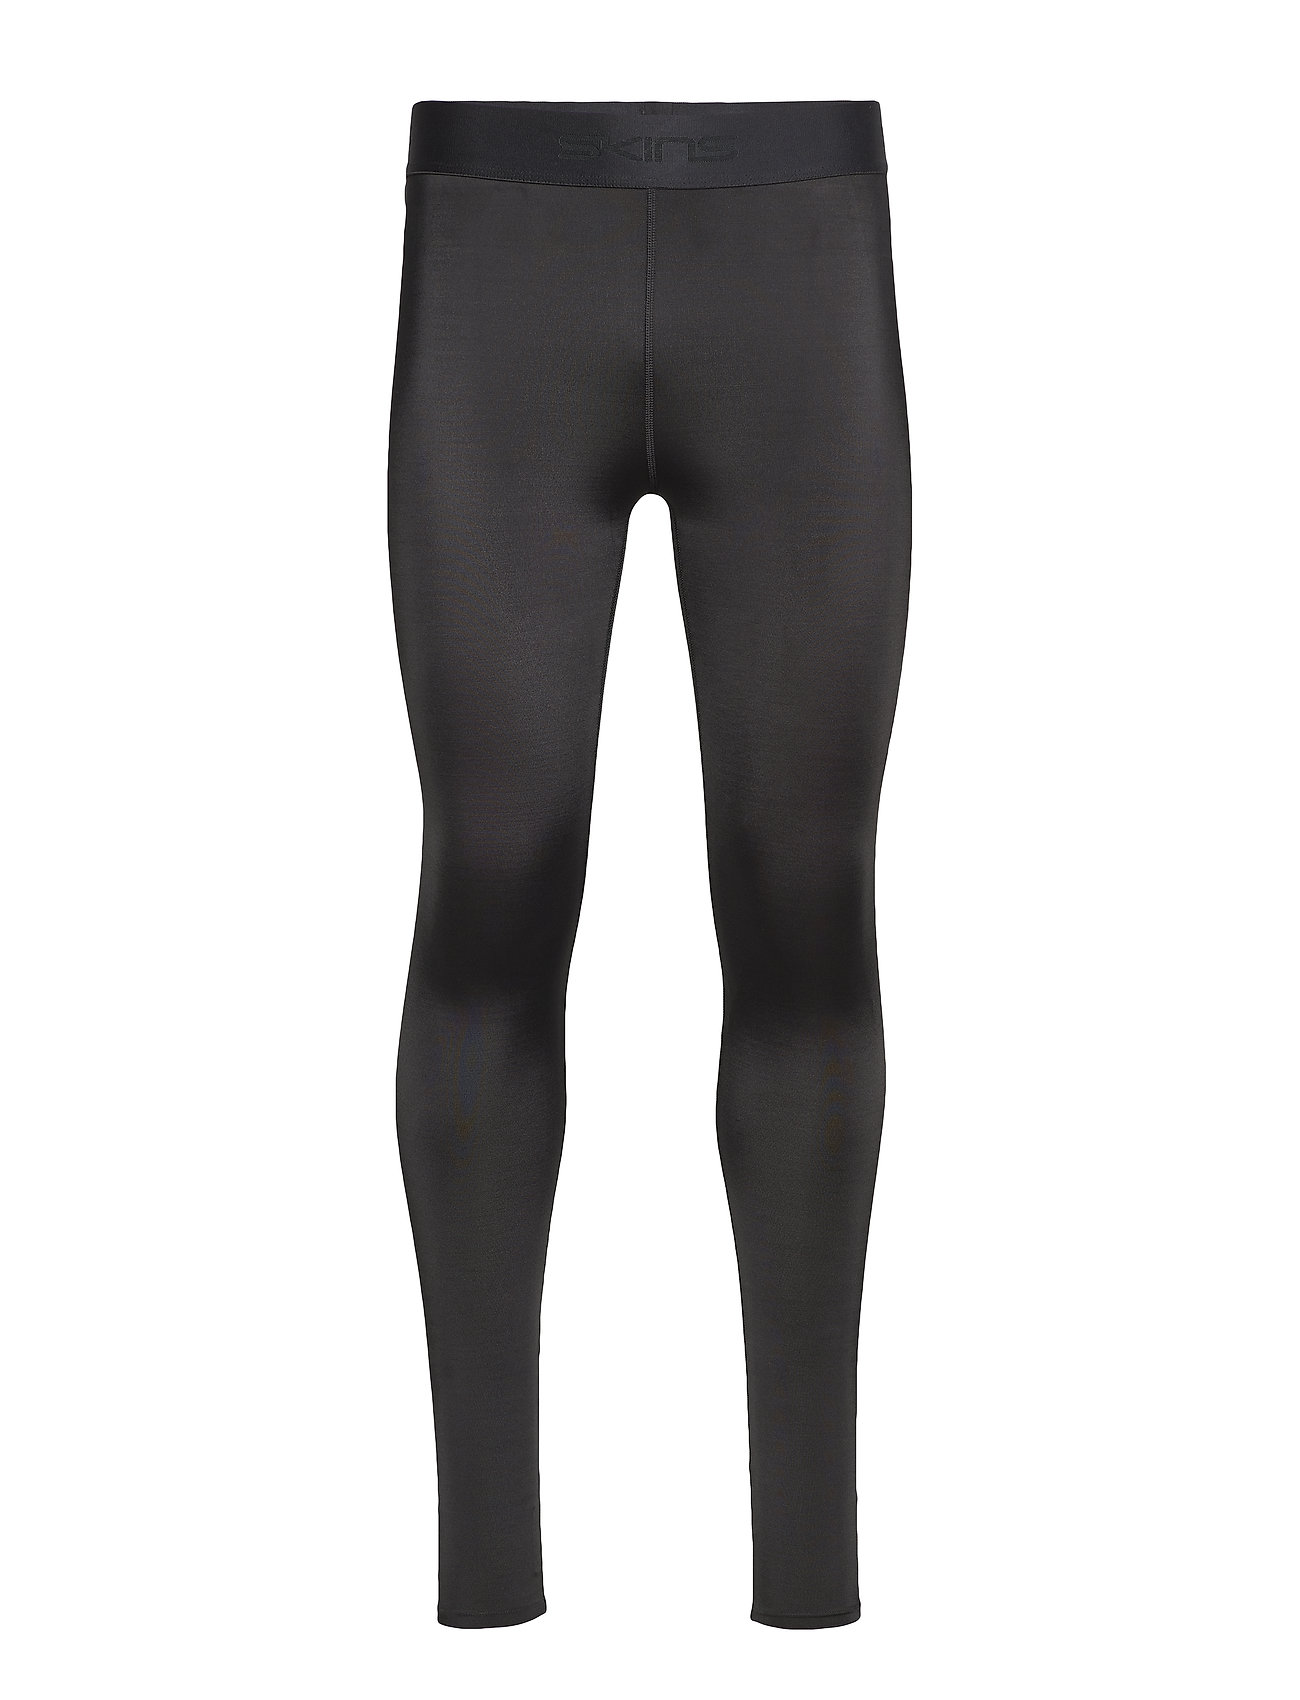 a0c07bd03dfc4 Dnamic Primary Mens Long Tights (Black) (£35) - Skins - | Boozt.com